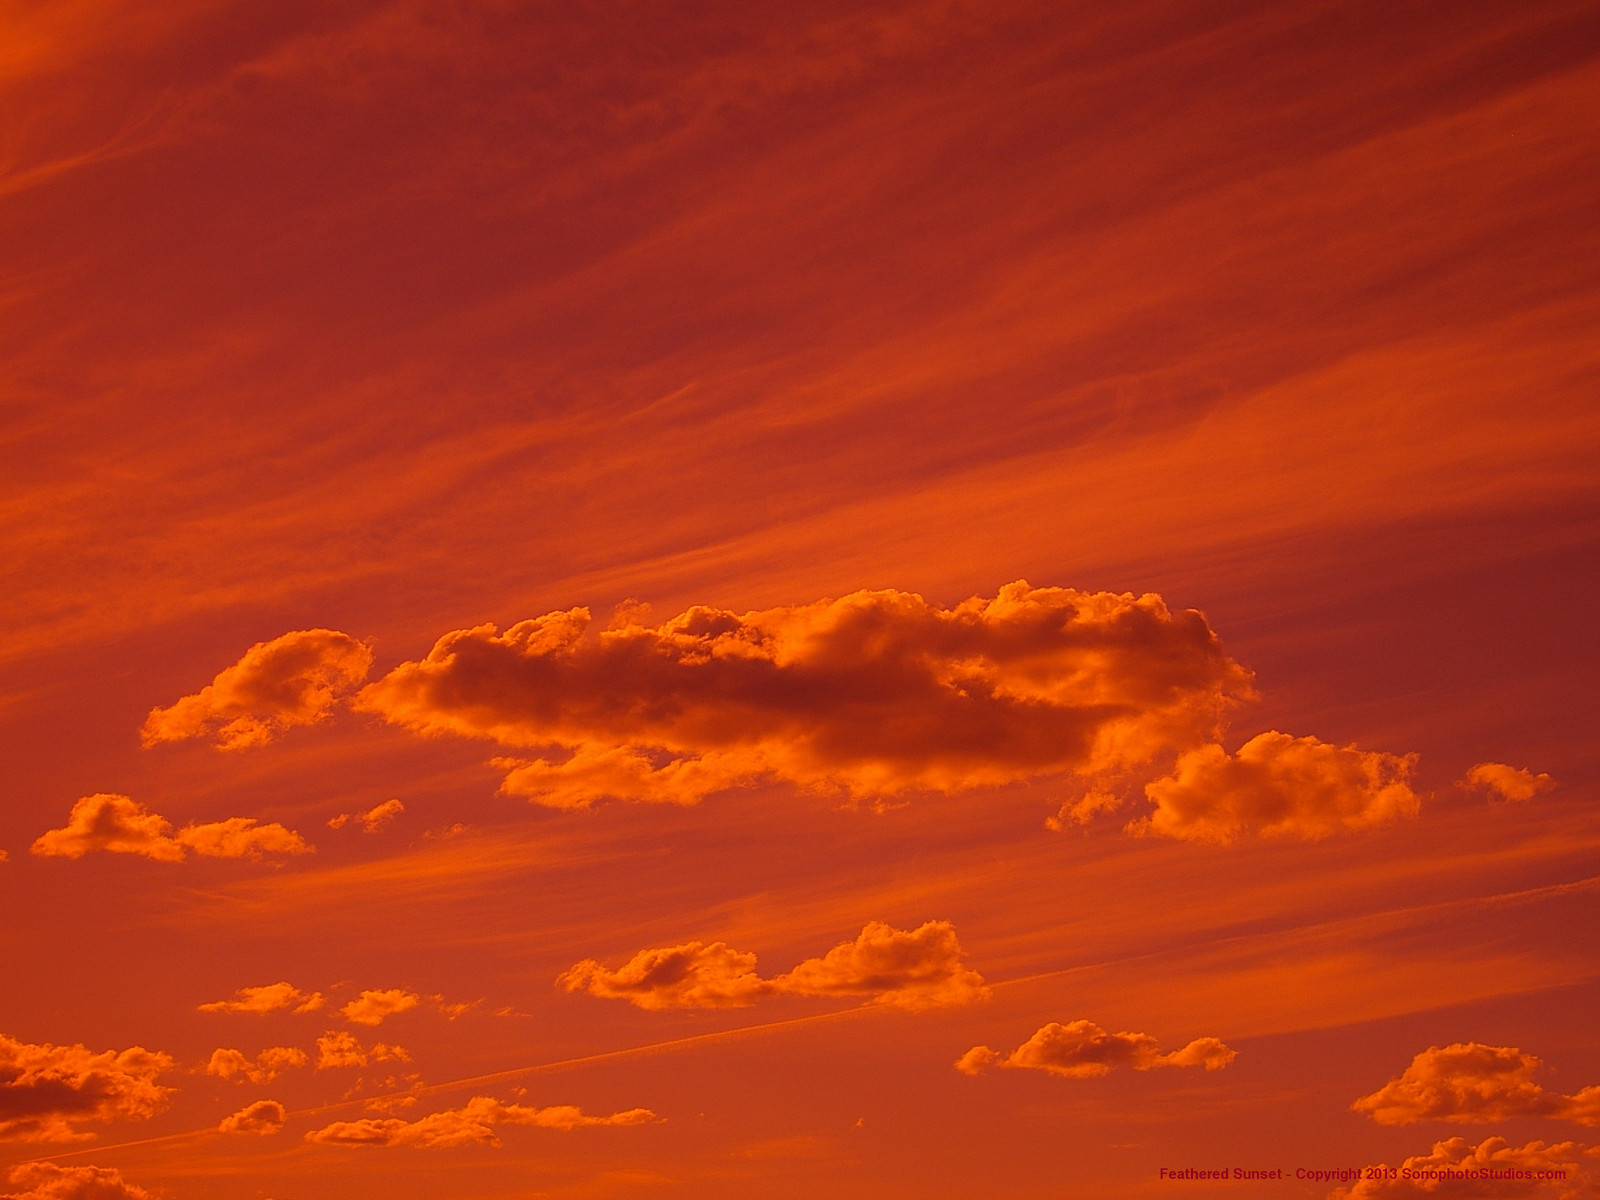 A rose colored sunset with cumulus and high altitude feathered clouds.